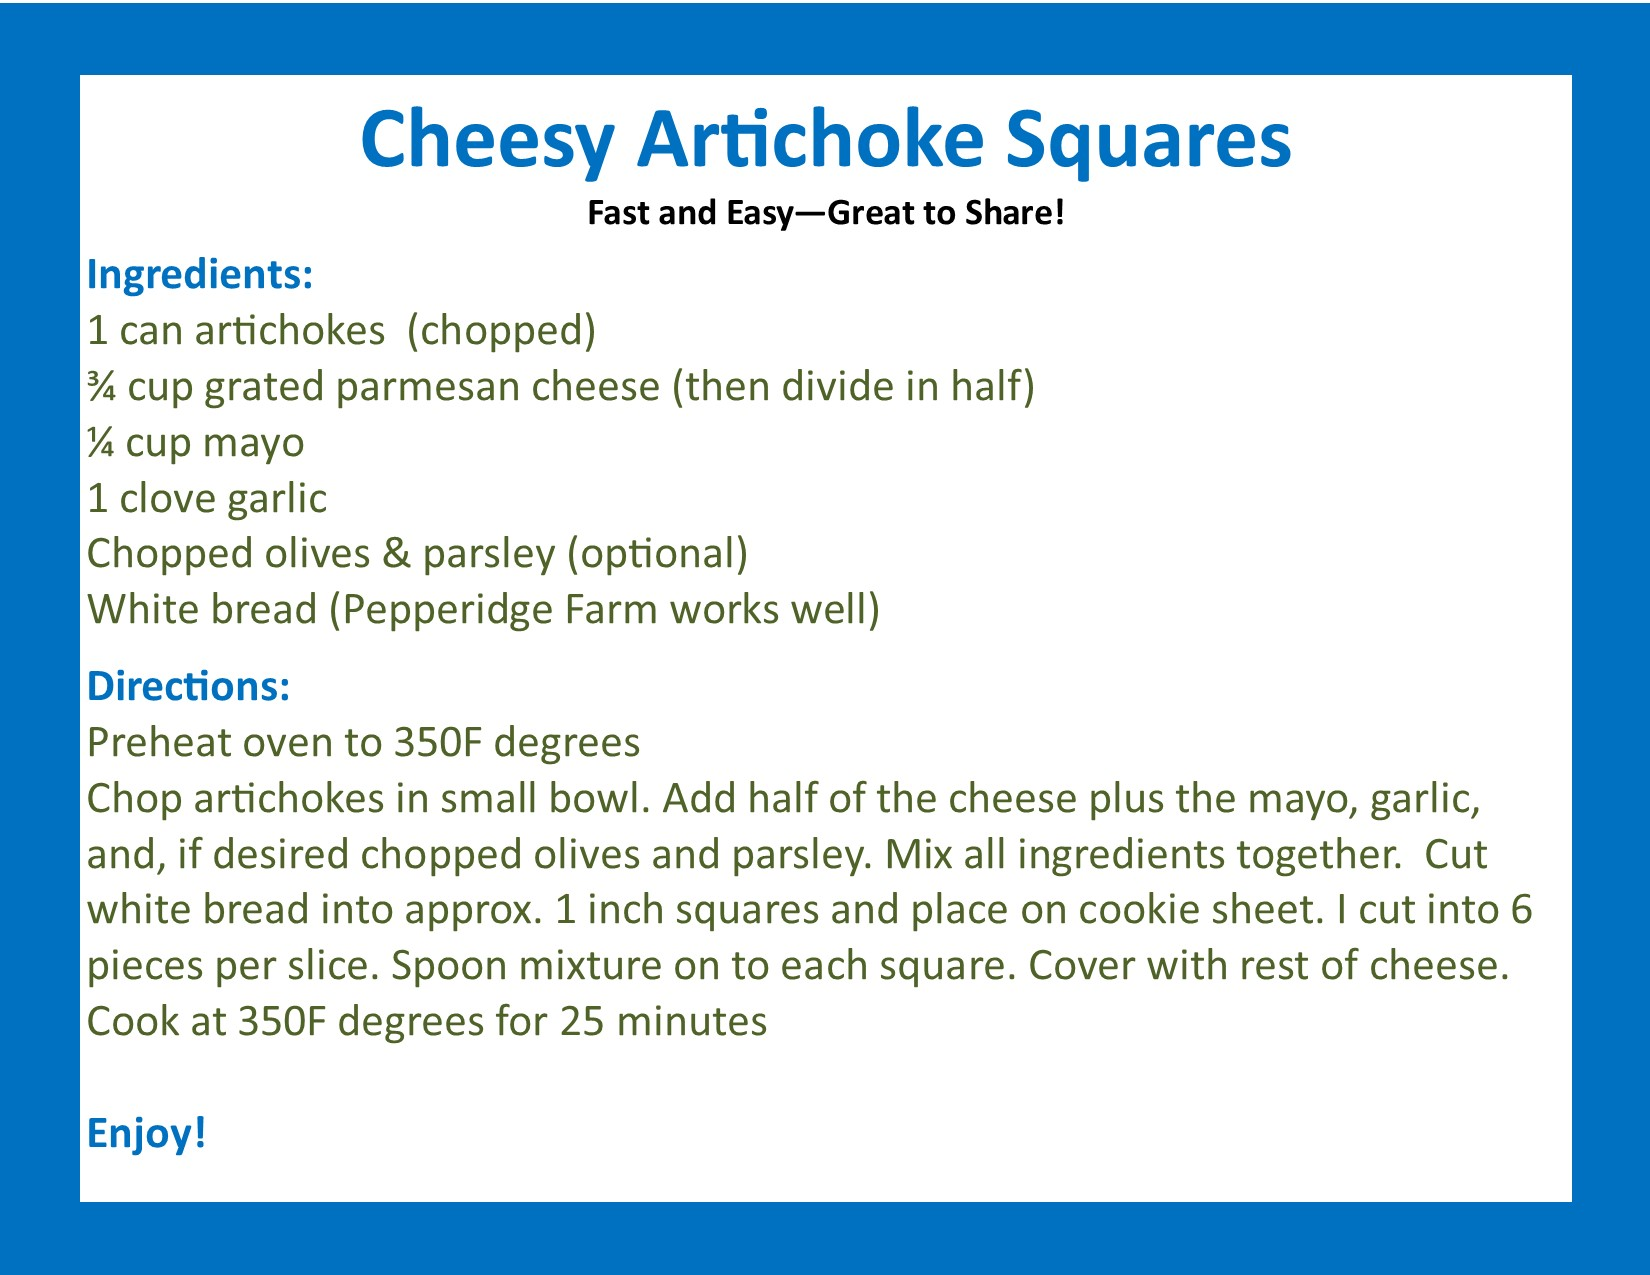 cheesy artichoke squares, Celebrating December with 30 days of JOY! Today… great recipes bring me JOY! Here is one shared with me that I love! #30daysofJOY #findingjoyeveryday #happiness #jamiejoy